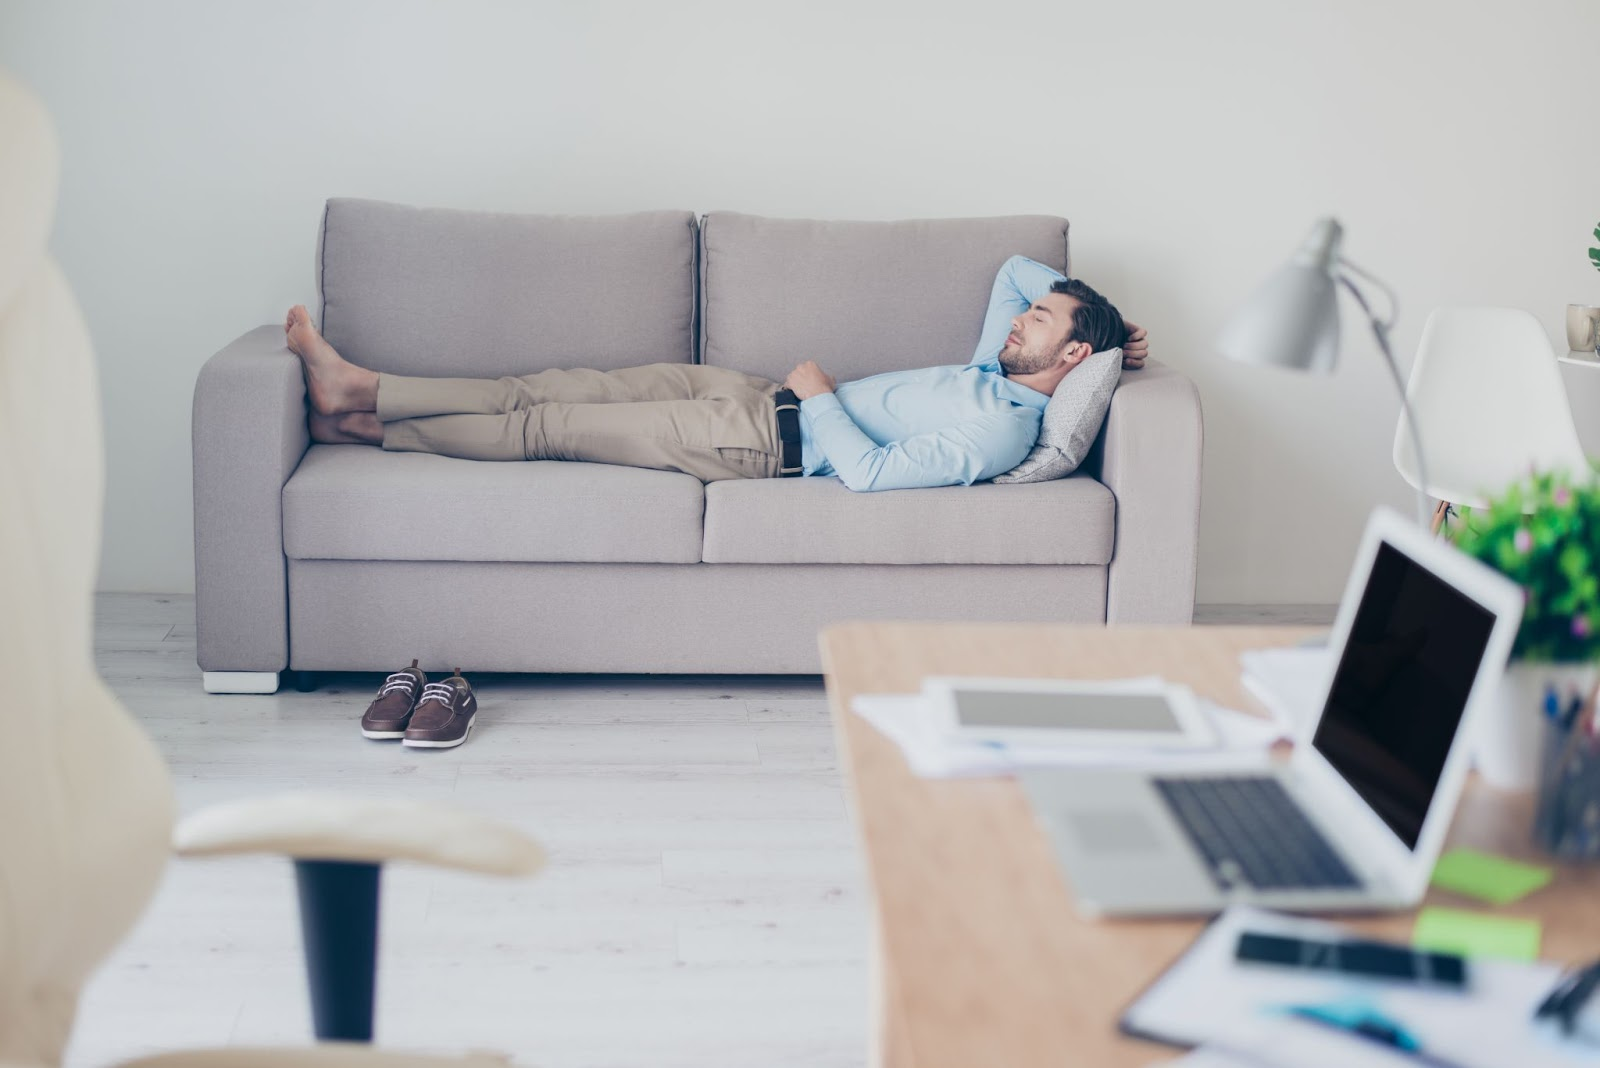 How to feel more awake: A man naps on the couch